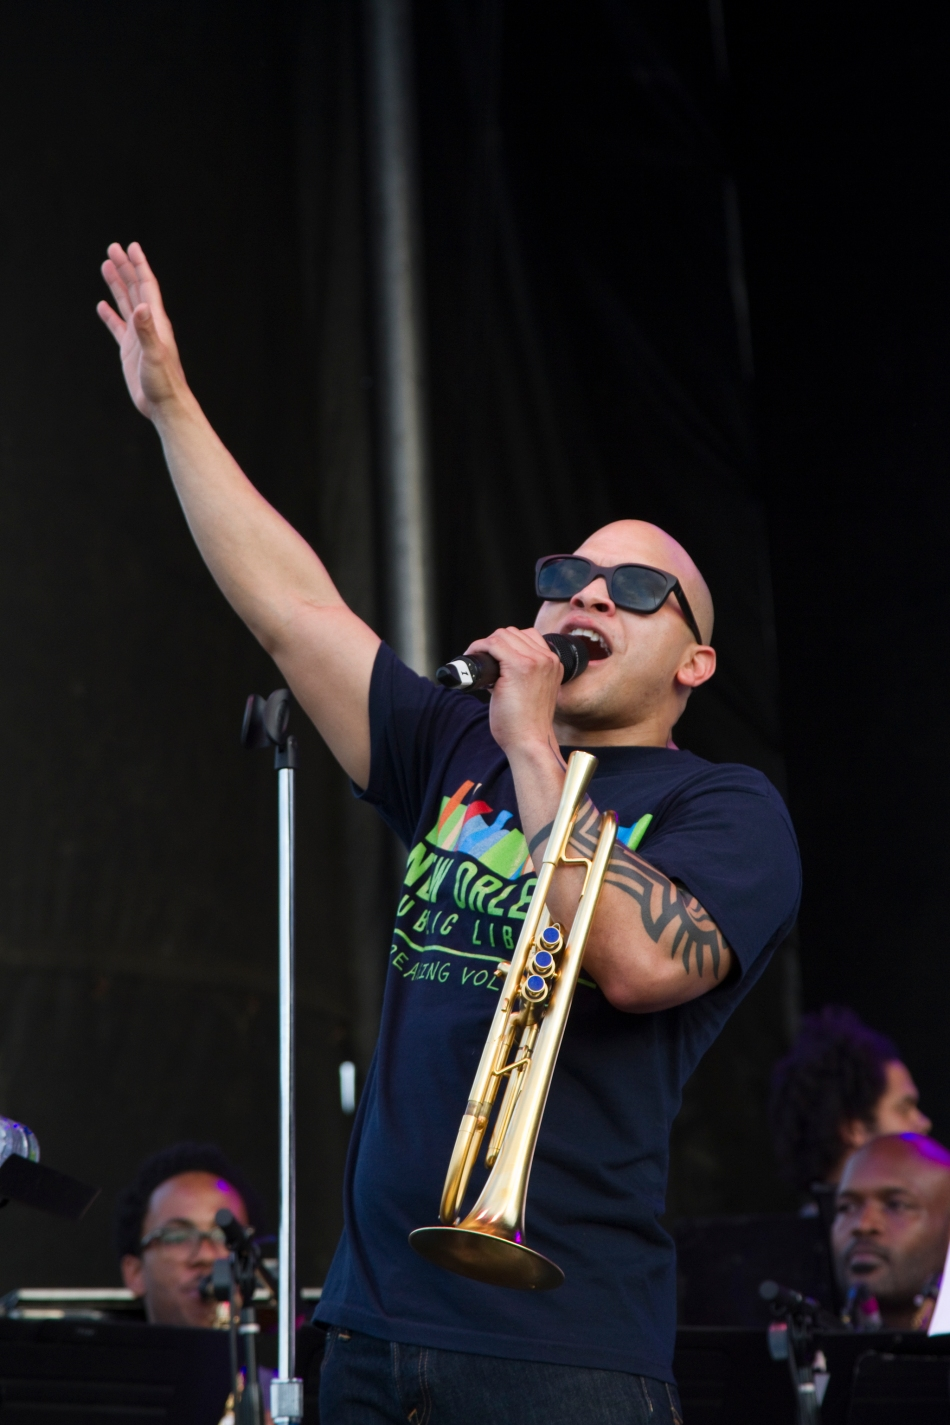 Irvin Mayfield singing and performing at French Quarter Fest 2015. Photo by Braden Piper bgpiperphotography.com